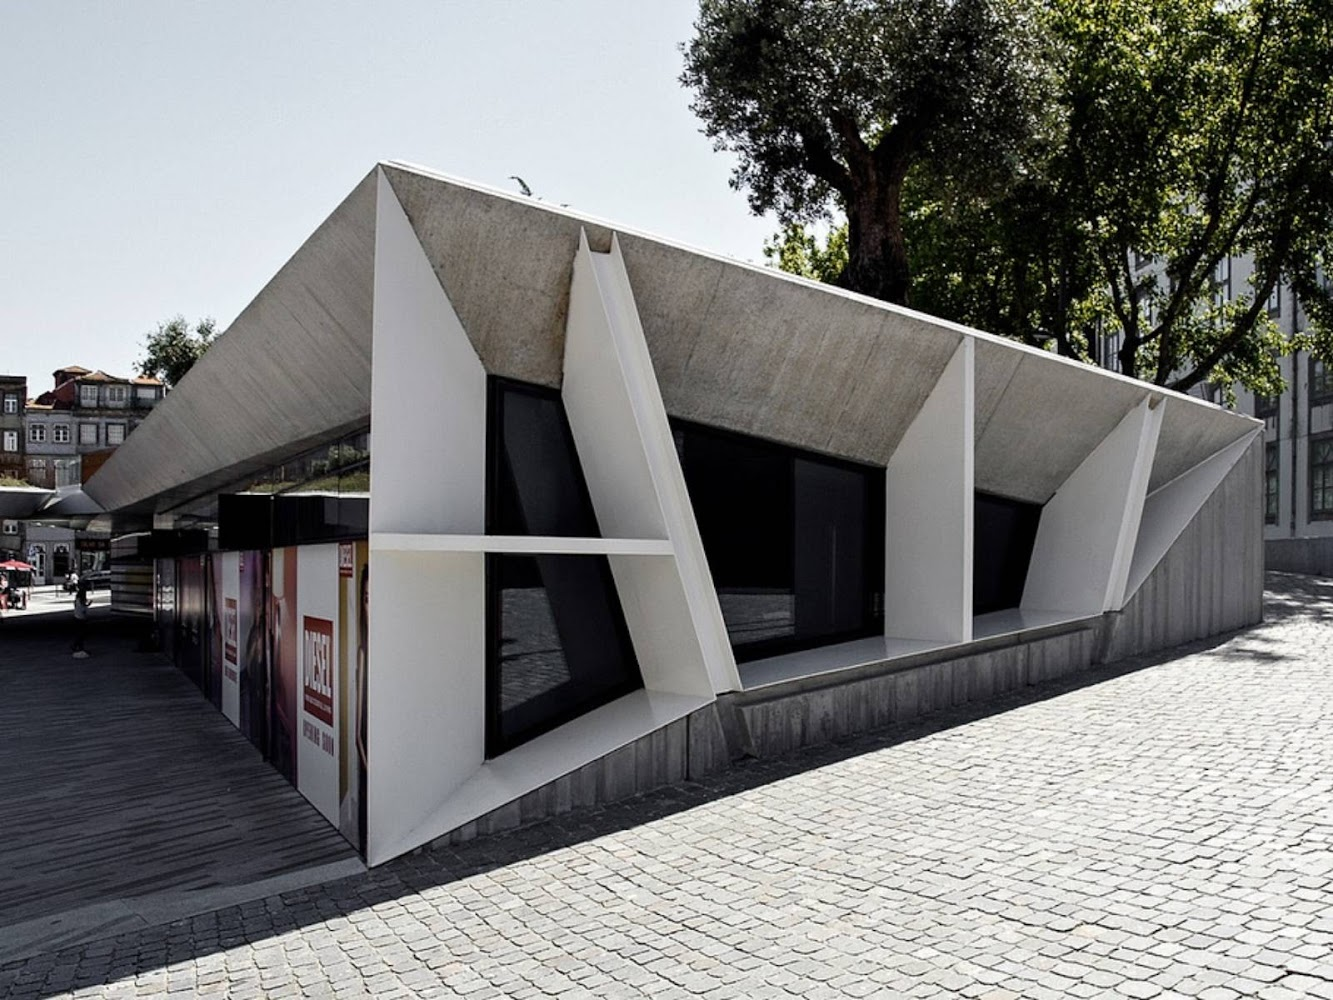 Praça de Lisboa by Balonas Menano Architects